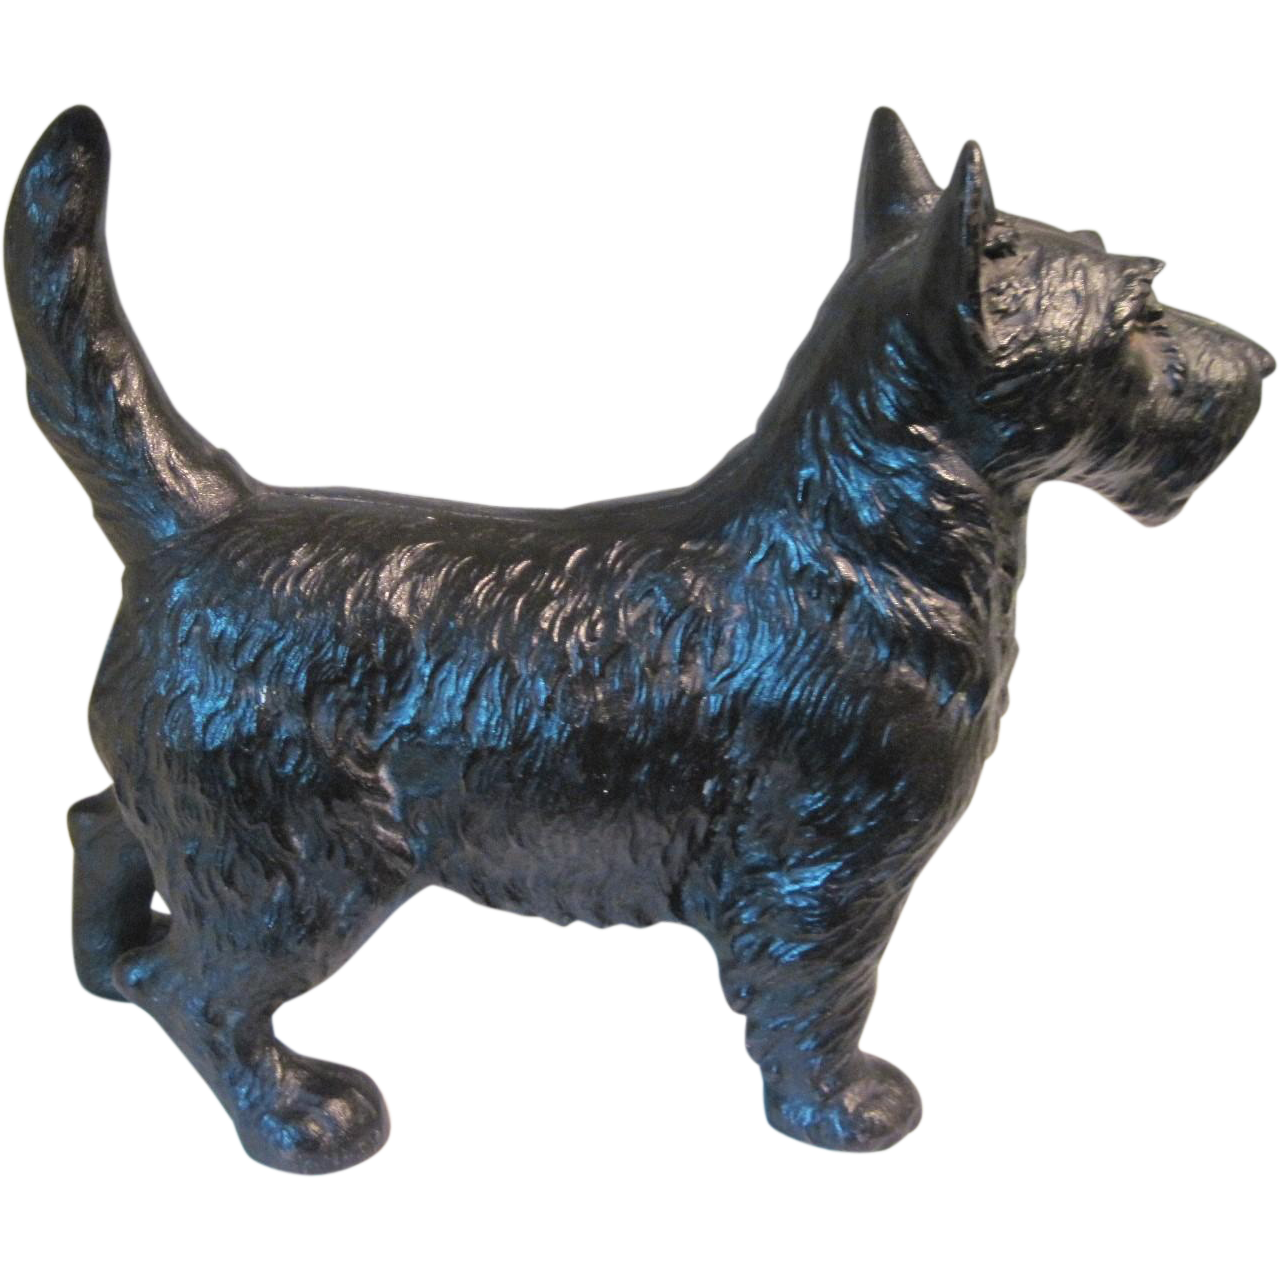 Circa 1930 39 s hubley cast iron scotty dog doorstop from gaylegreen on ruby lane - Cast iron dog doorstop ...